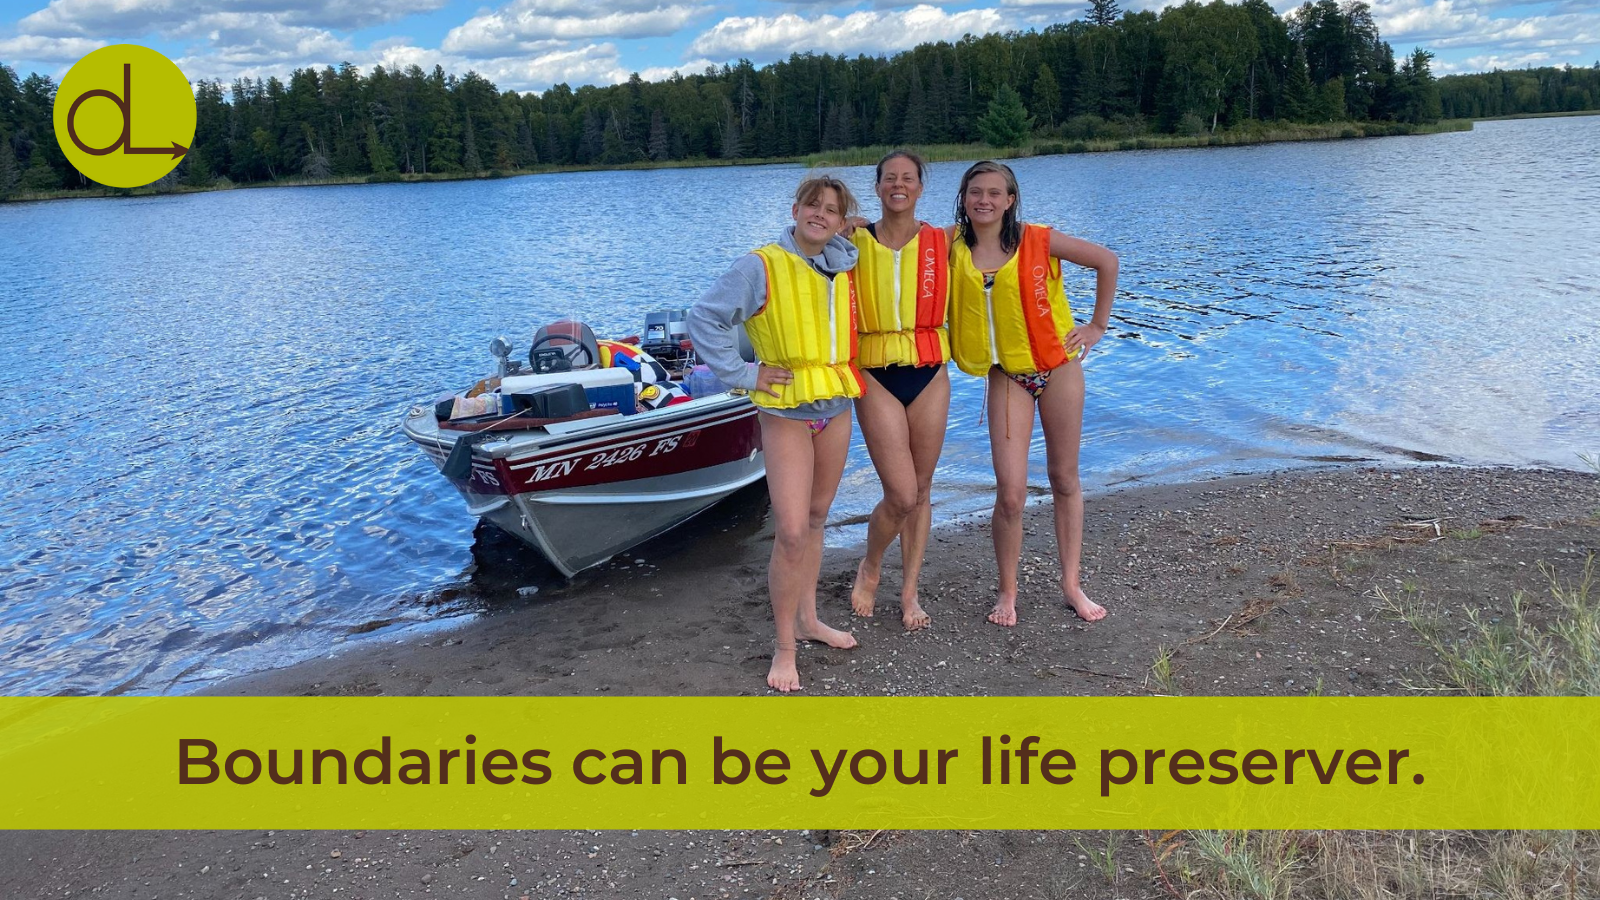 Photo of Darcy with her two daughters posing for a photo in front of a boat on a lake, wearing lifejackets.